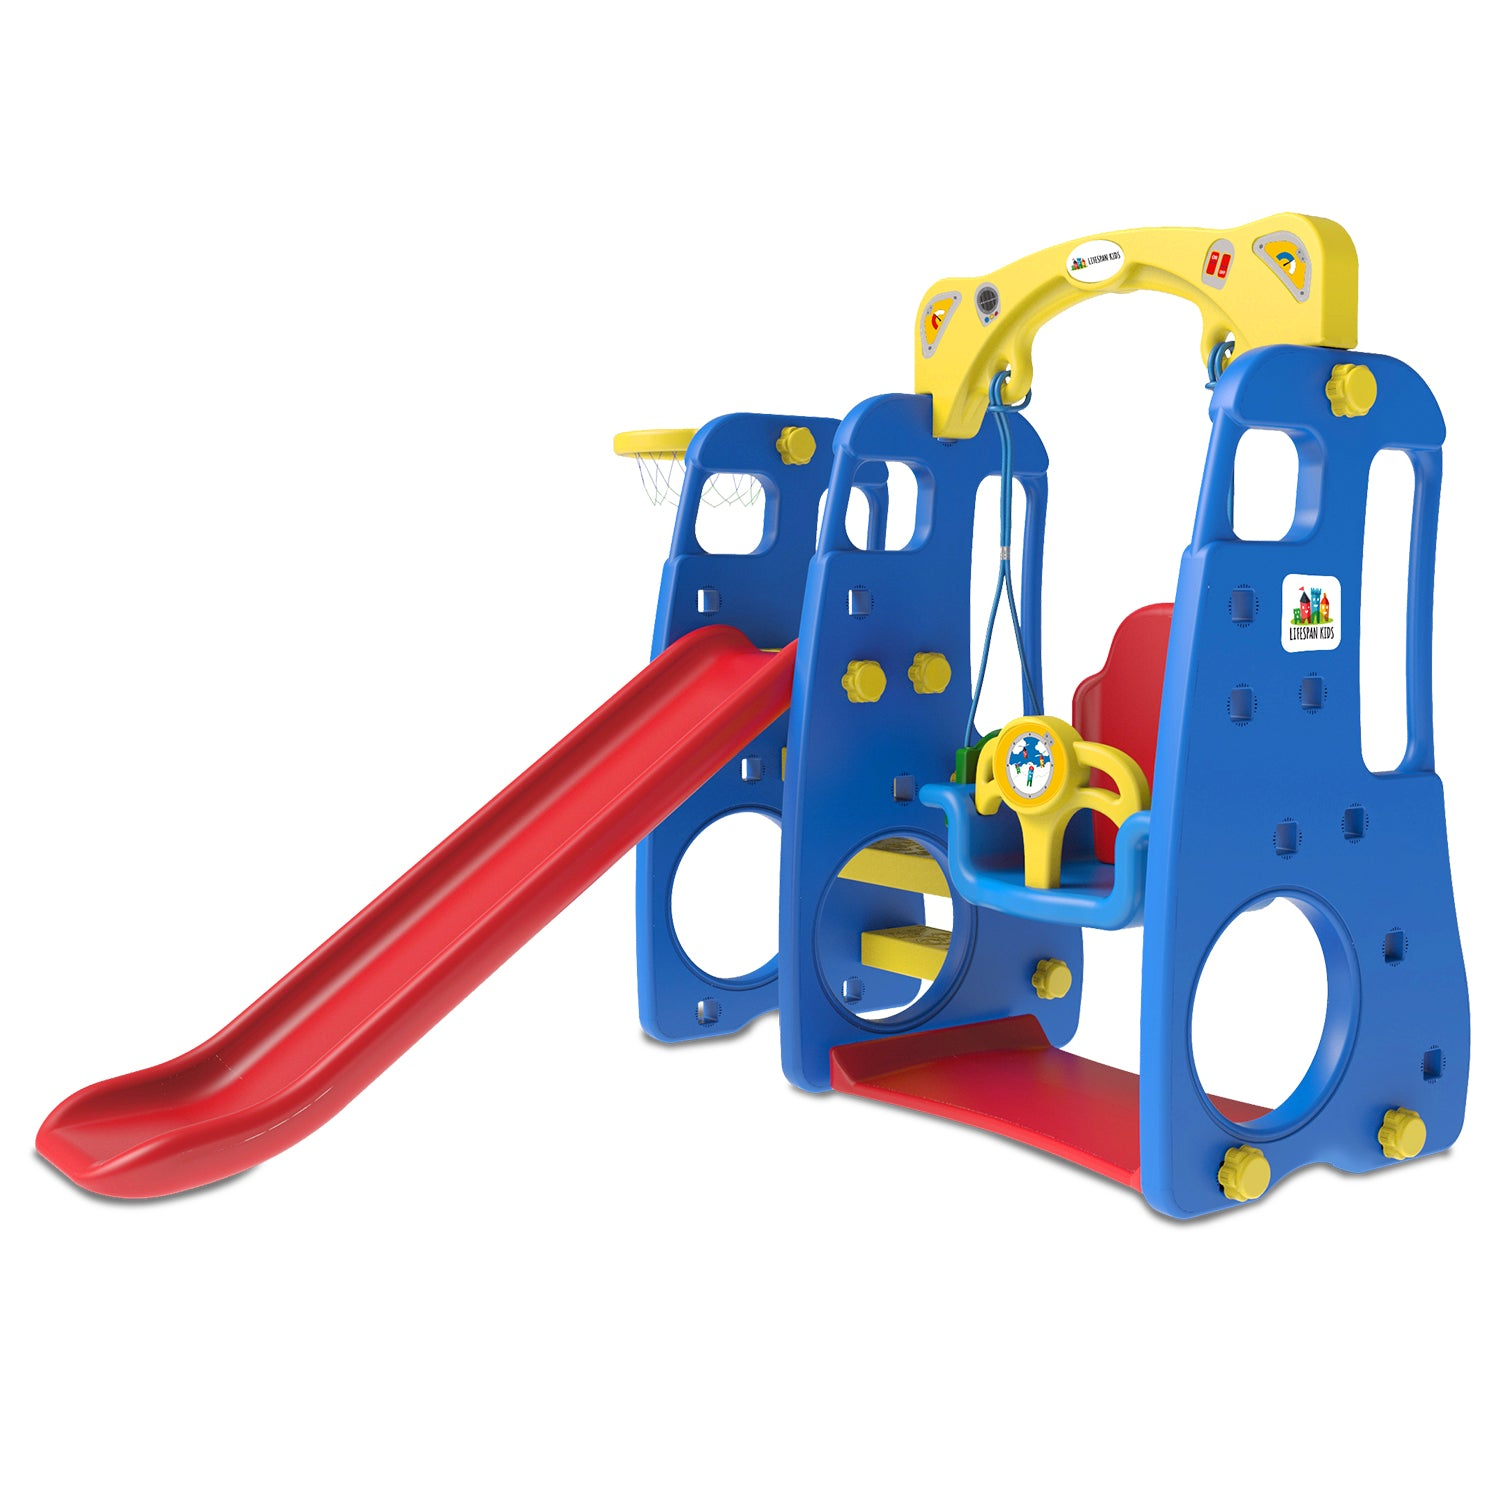 Lifespan Kids Ruby 4 in 1 Slide and Swing